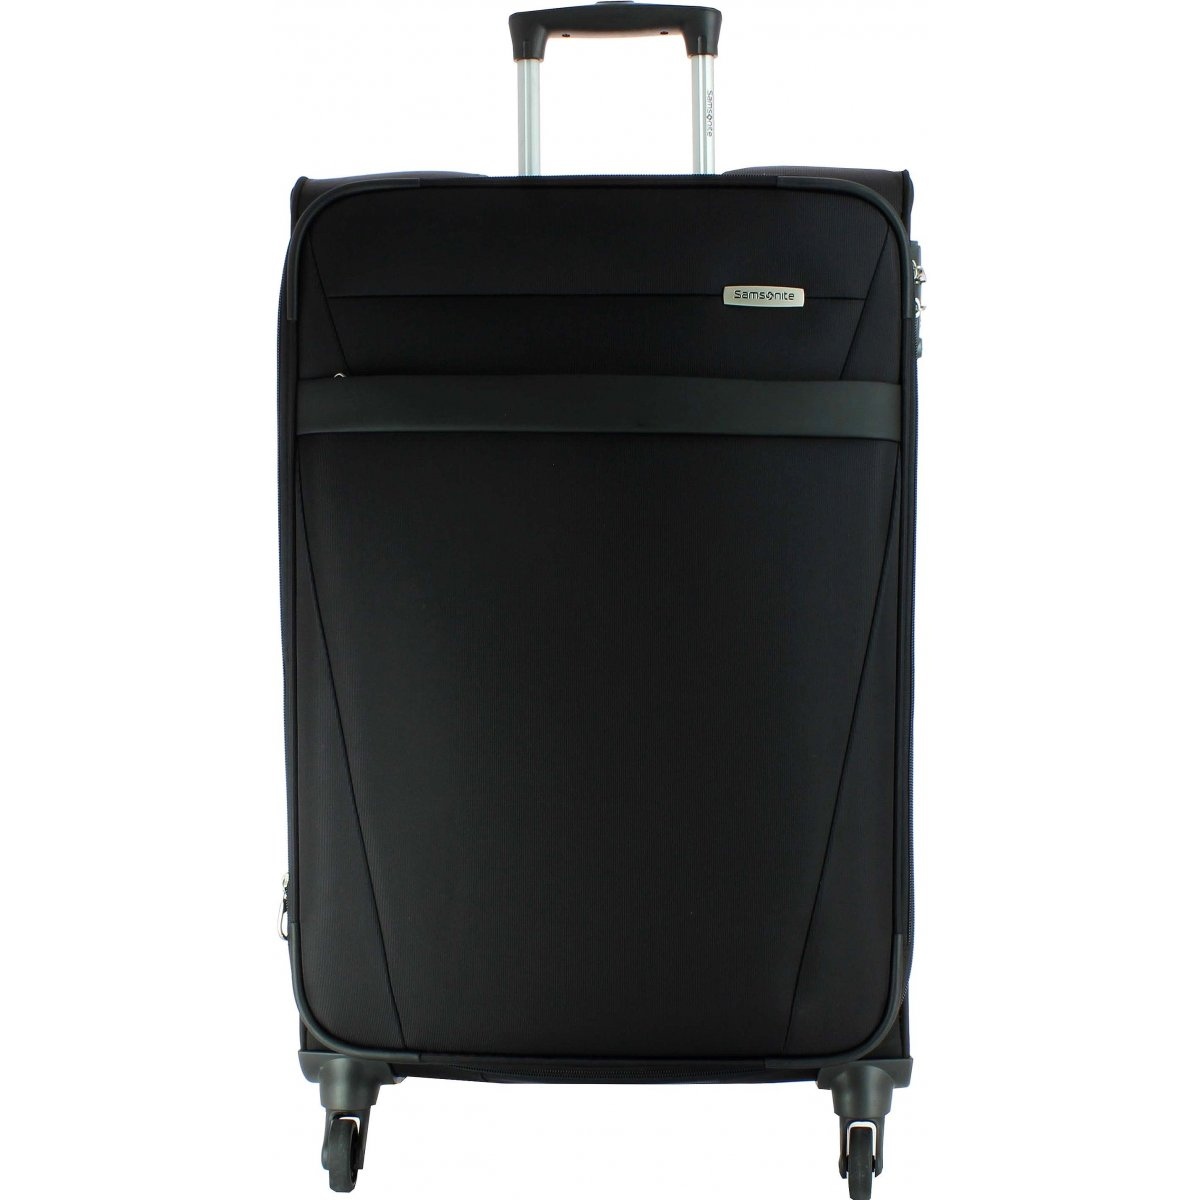 valise samsonite ncs auva spinner l 80cm ncsauva22 couleur principale noir solde. Black Bedroom Furniture Sets. Home Design Ideas